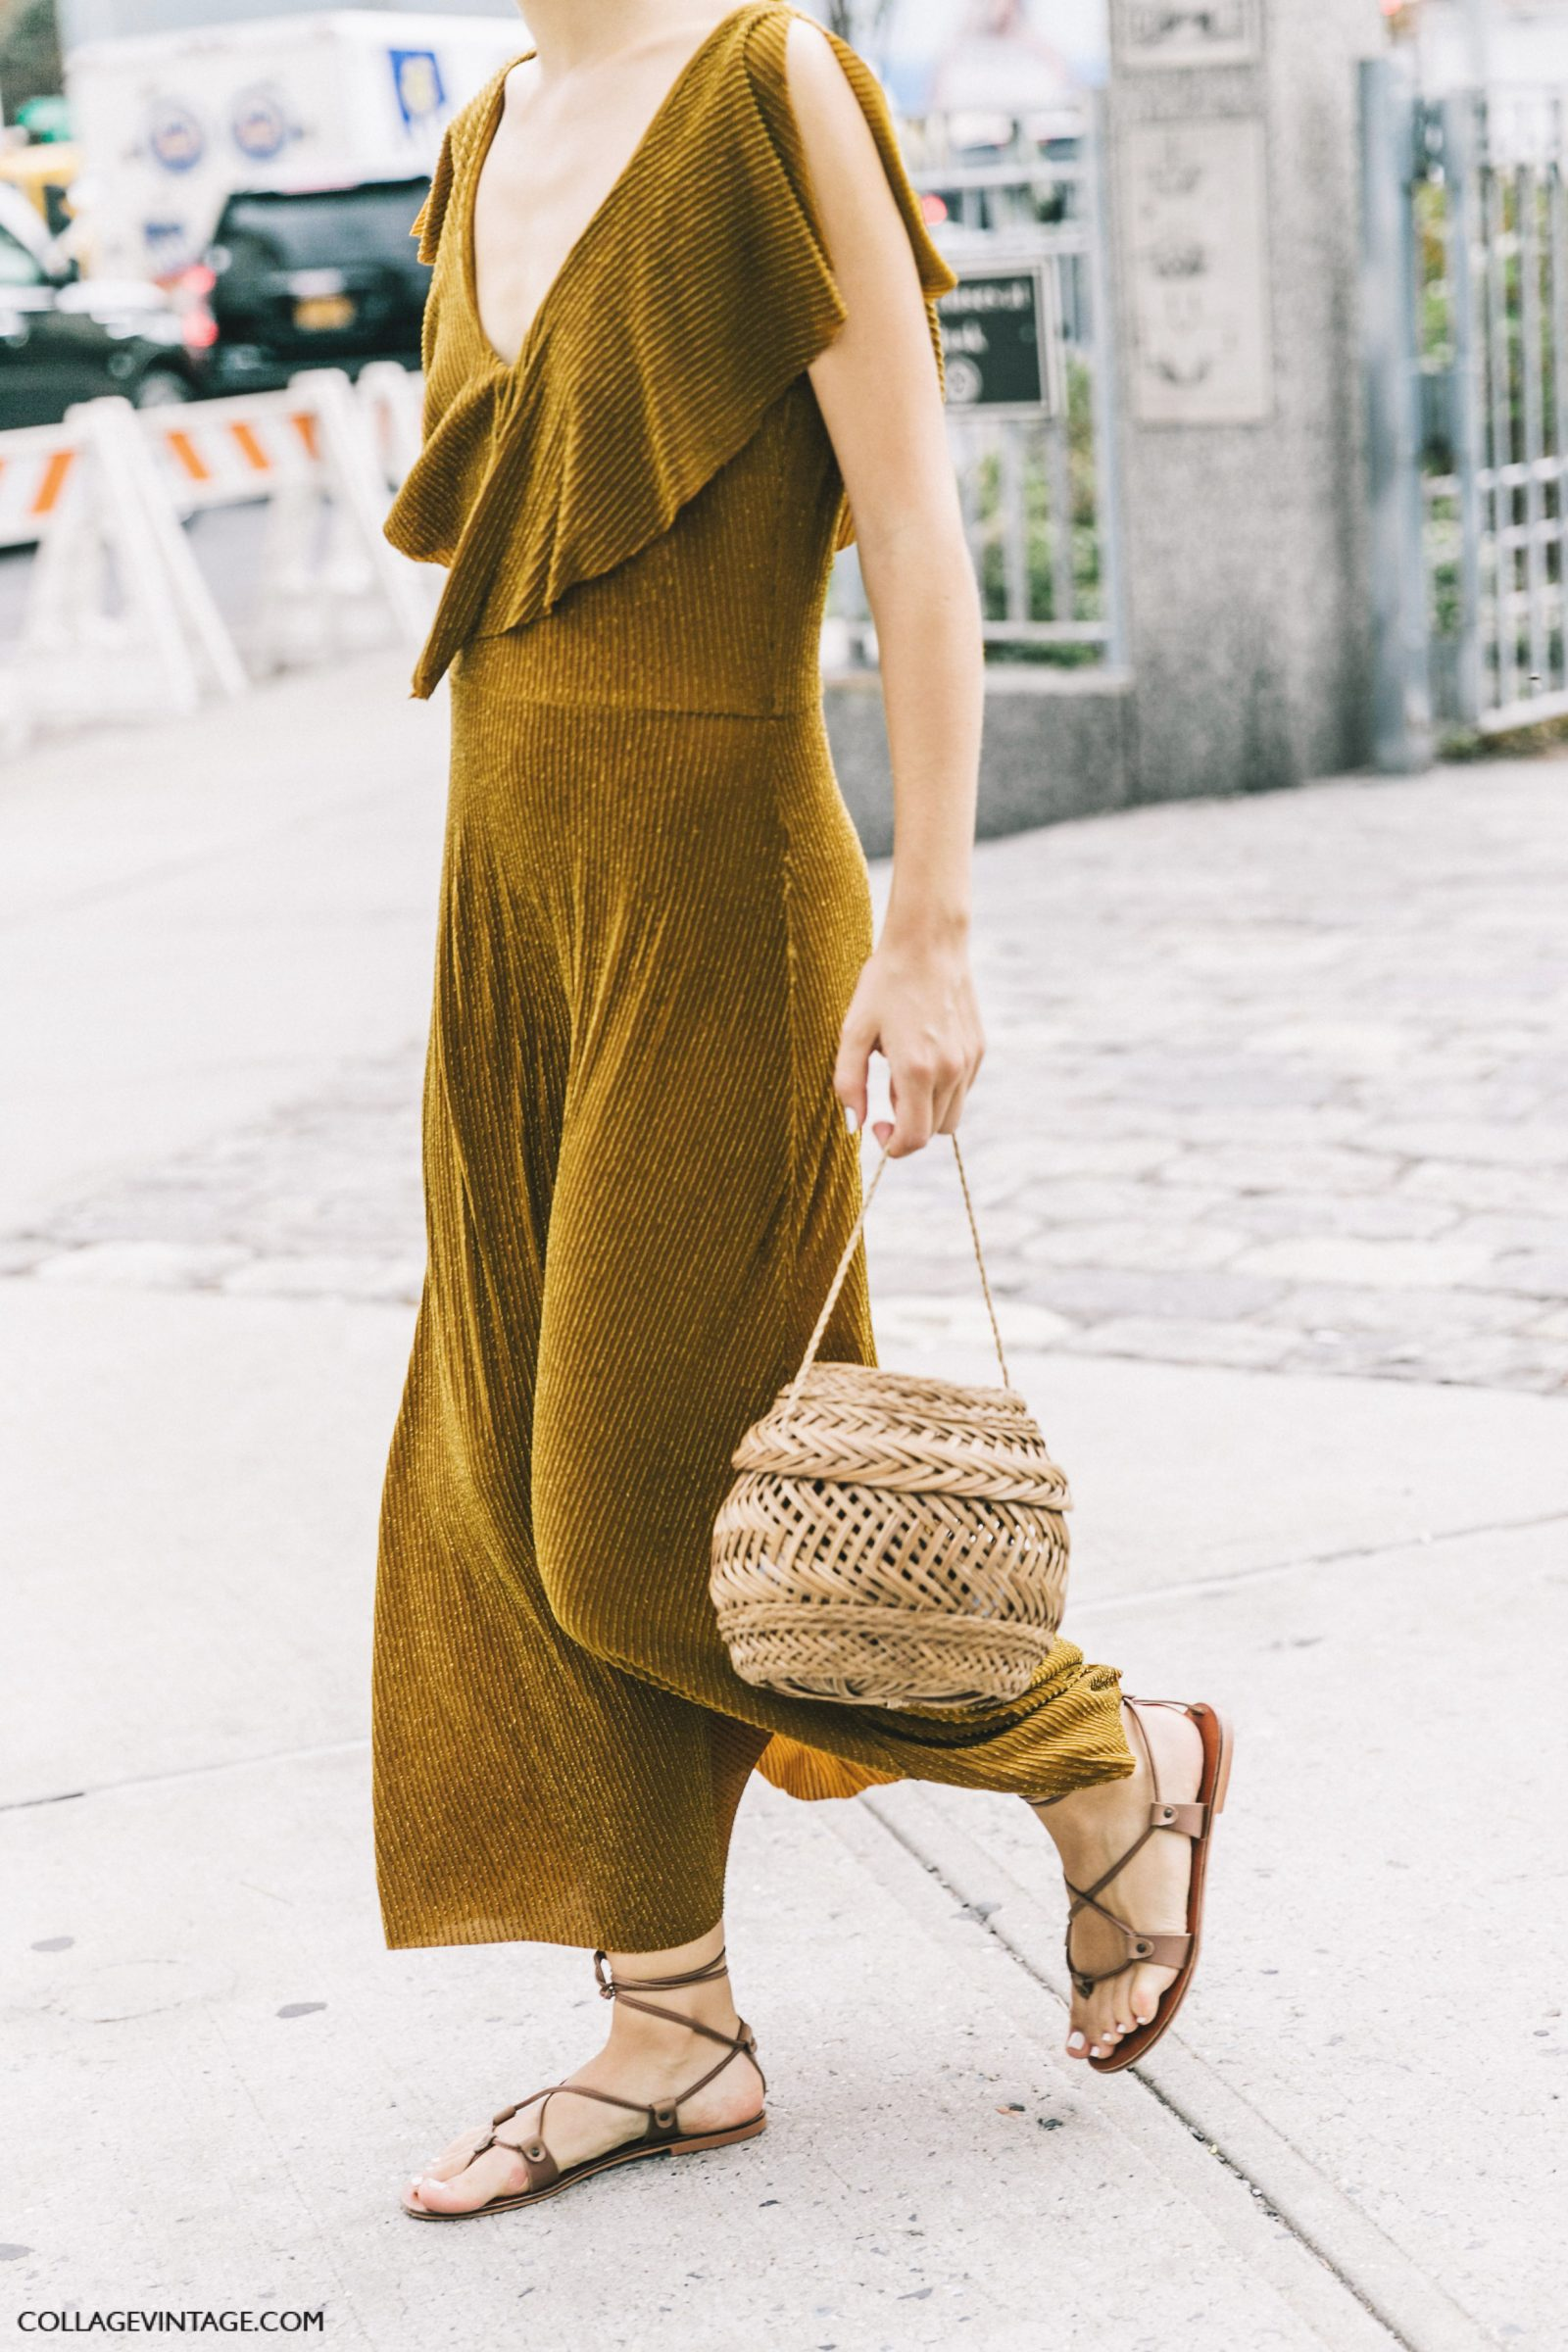 nyfw-new_york_fashion_week_ss17-street_style-outfits-collage_vintage-zara_dress-basket-knotted_sandals-jenny_walton-1